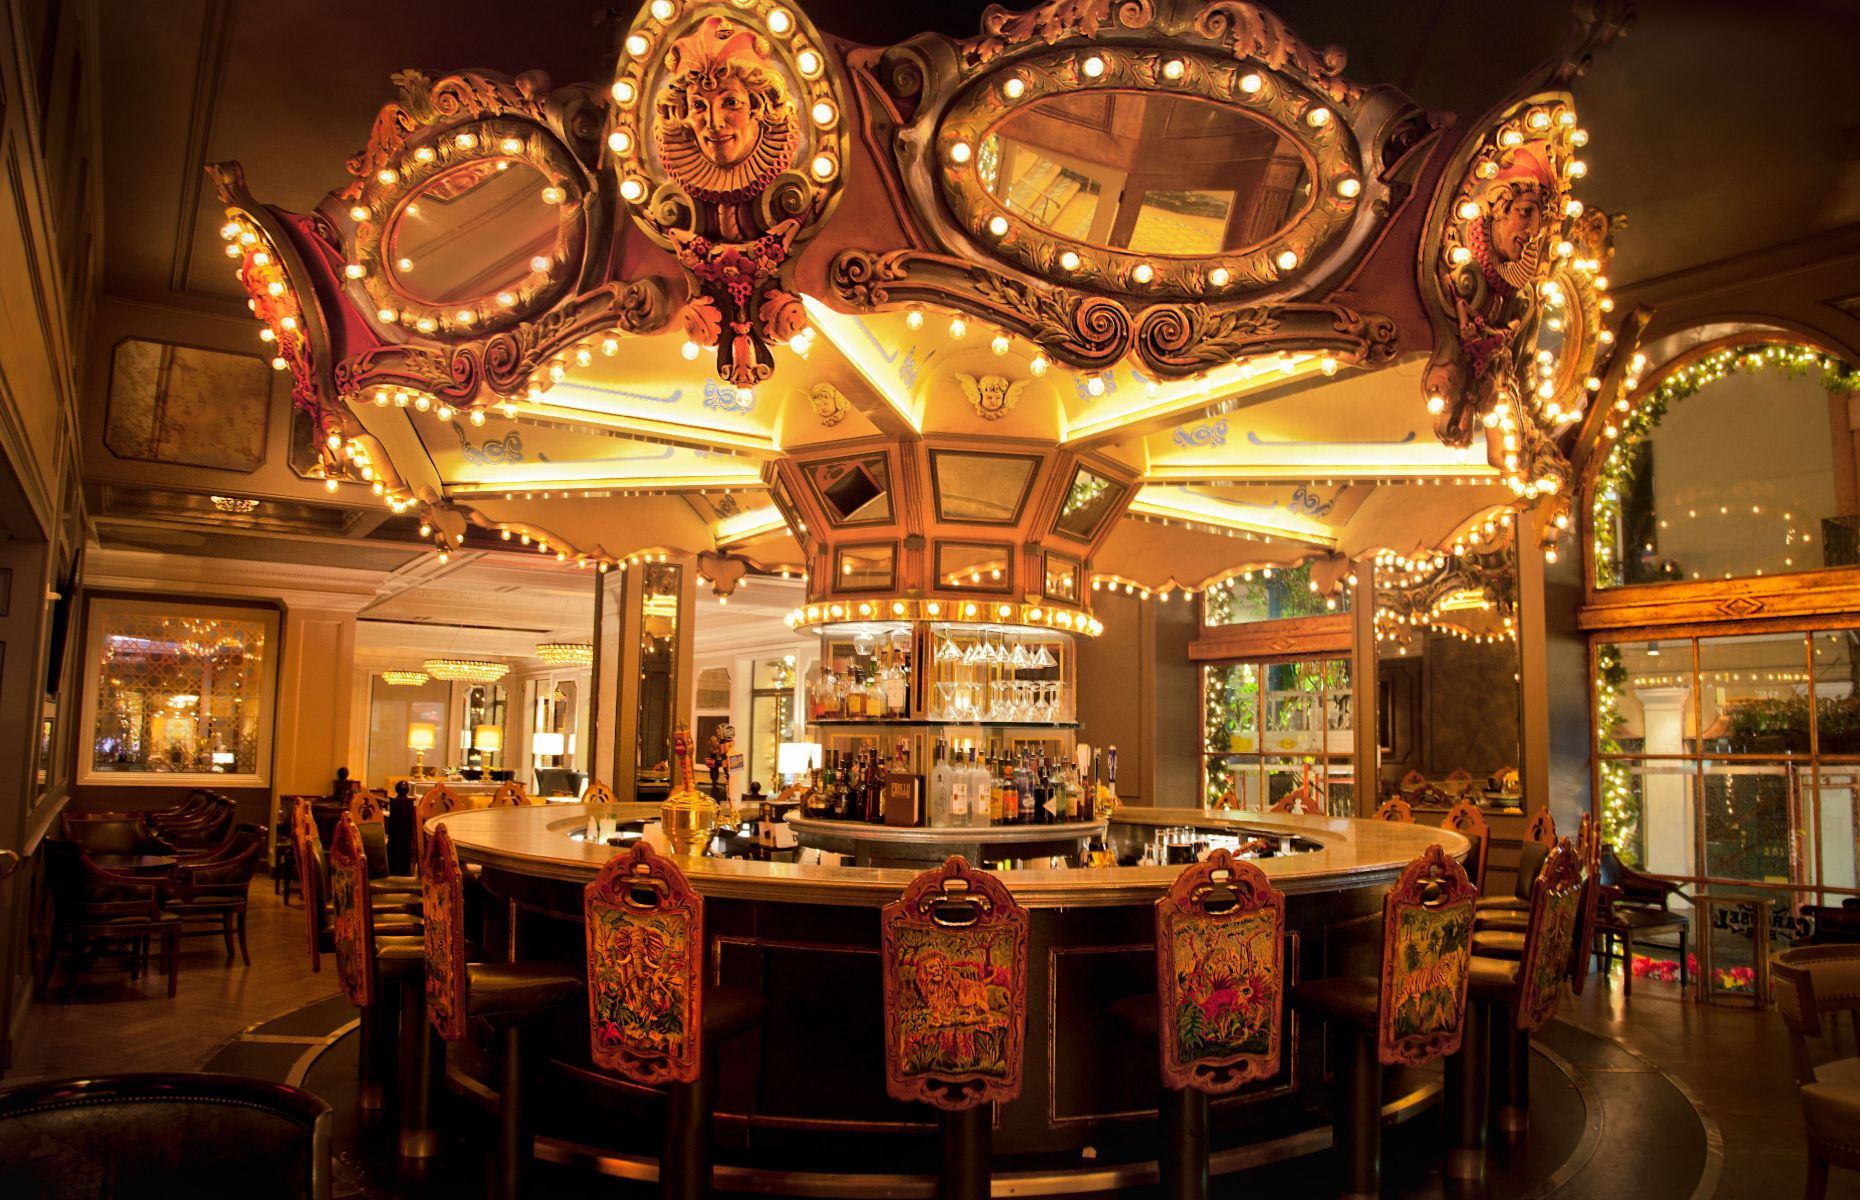 Hotel in New Orleans (image: Hotel Monteleone/Booking.com